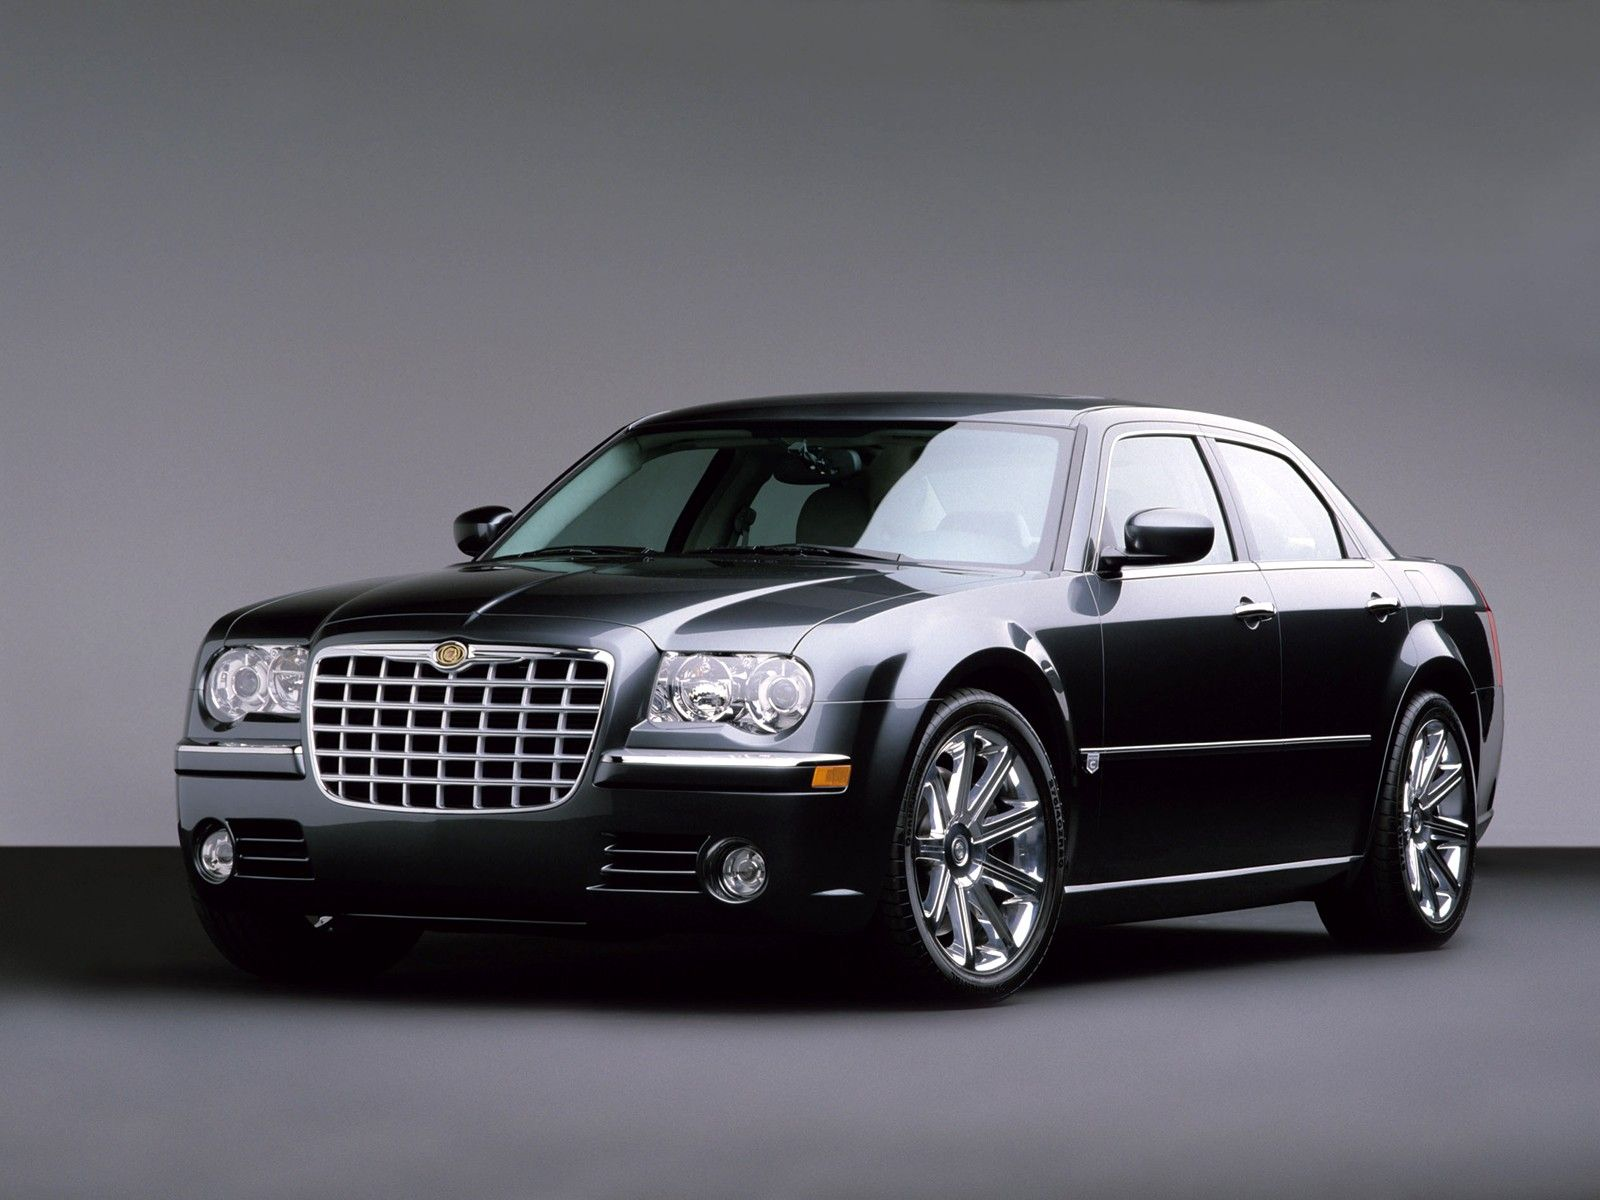 hight resolution of chrysler 300 my small dream car